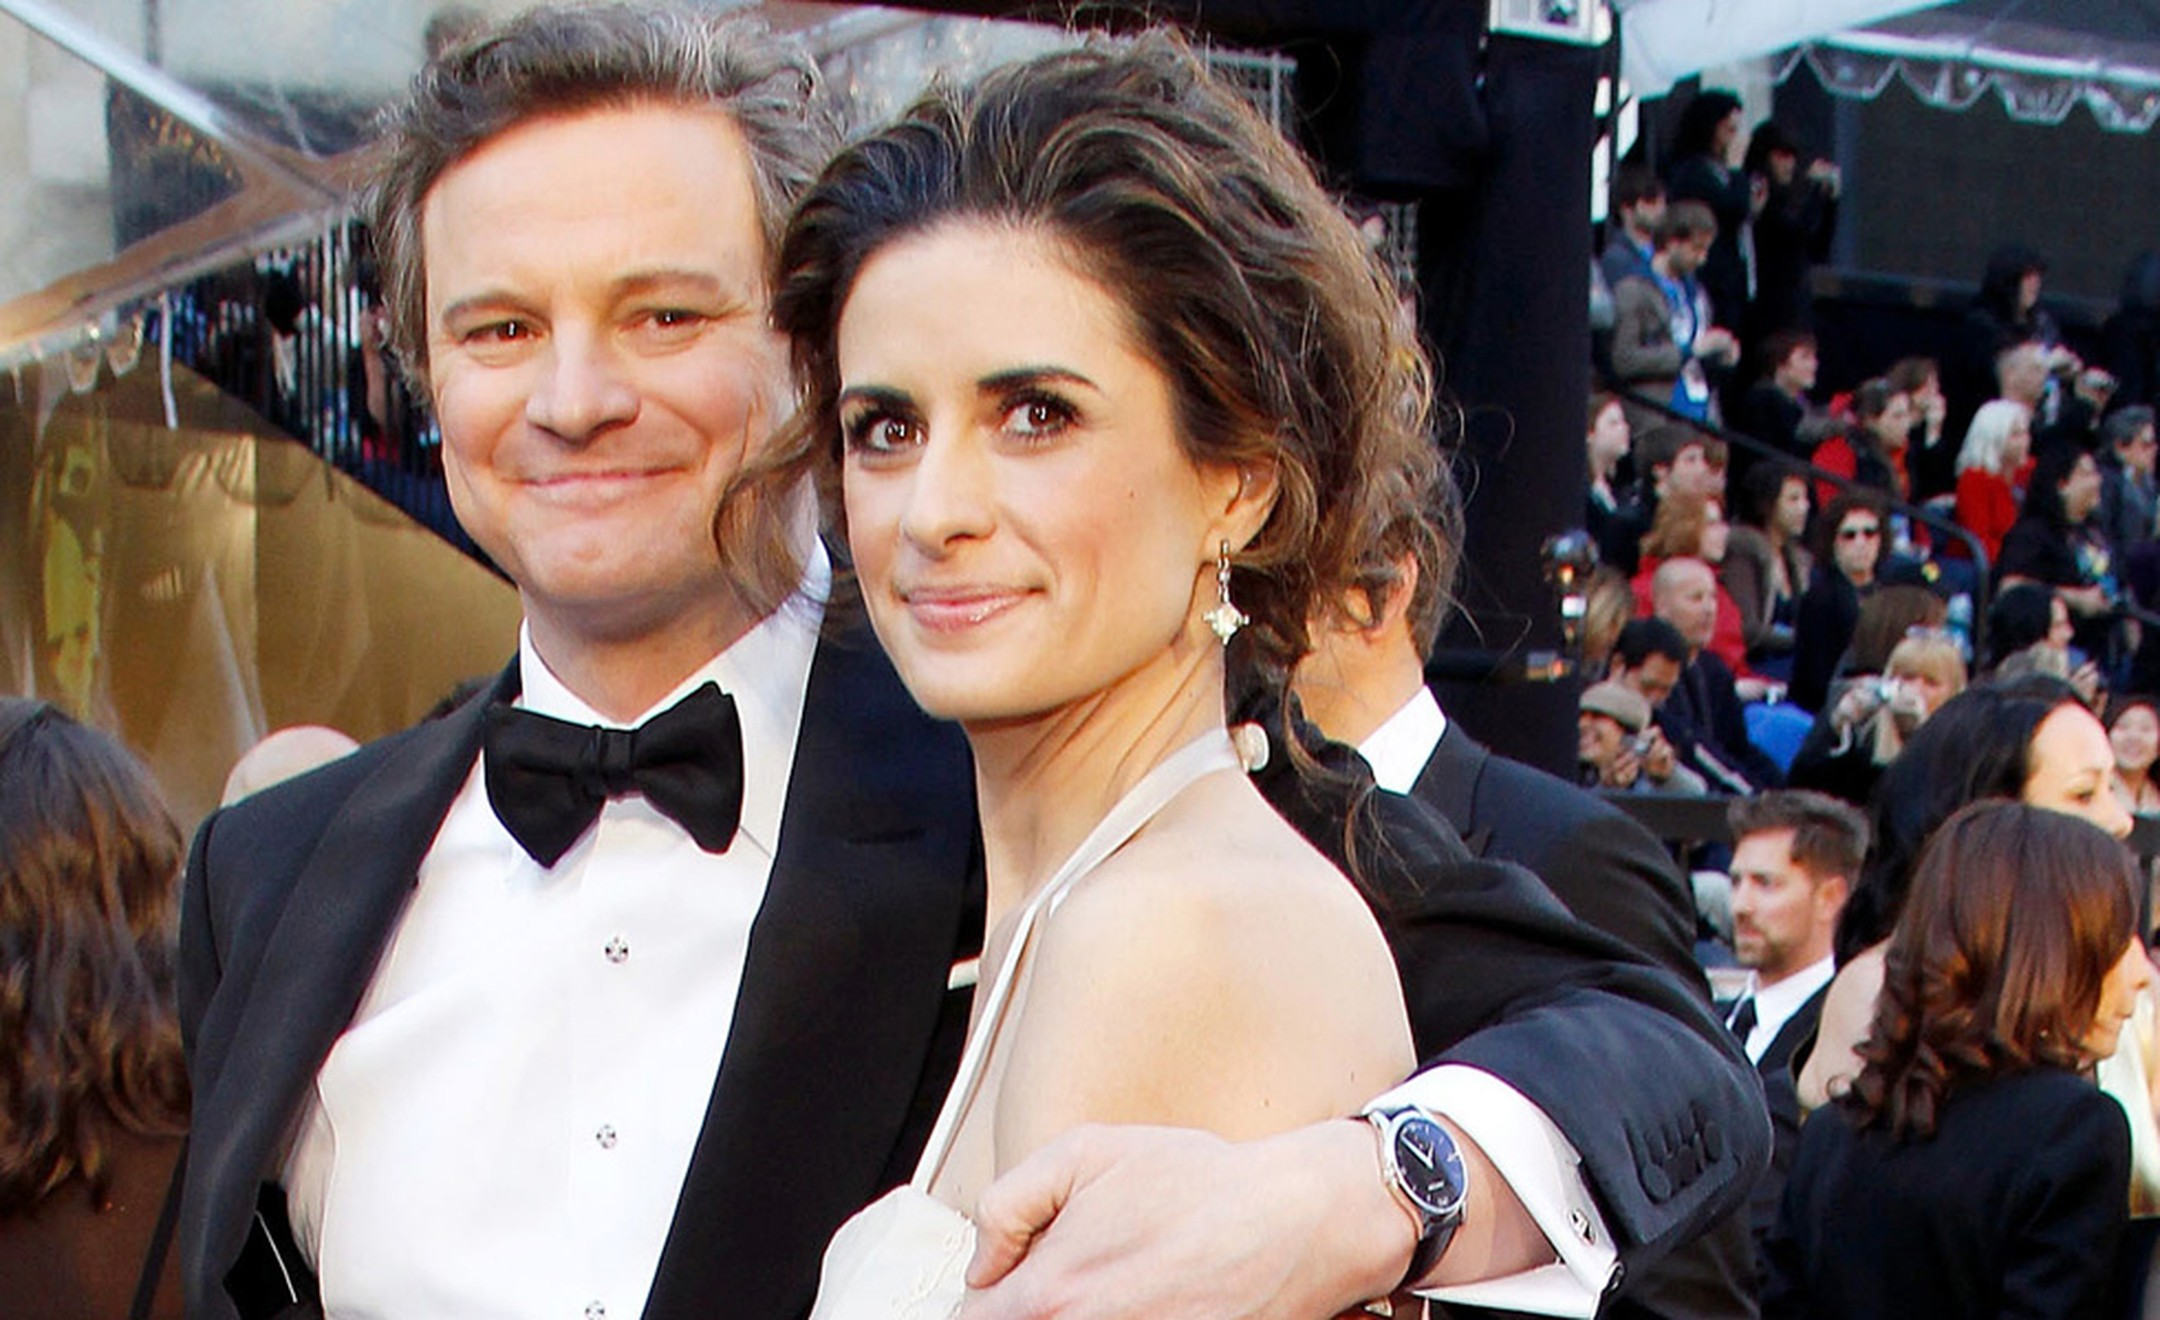 A proud Colin Firth embraces his wife Livia Giuggioli showing to advantage his Chopard L.U.C. XPS white gold watch